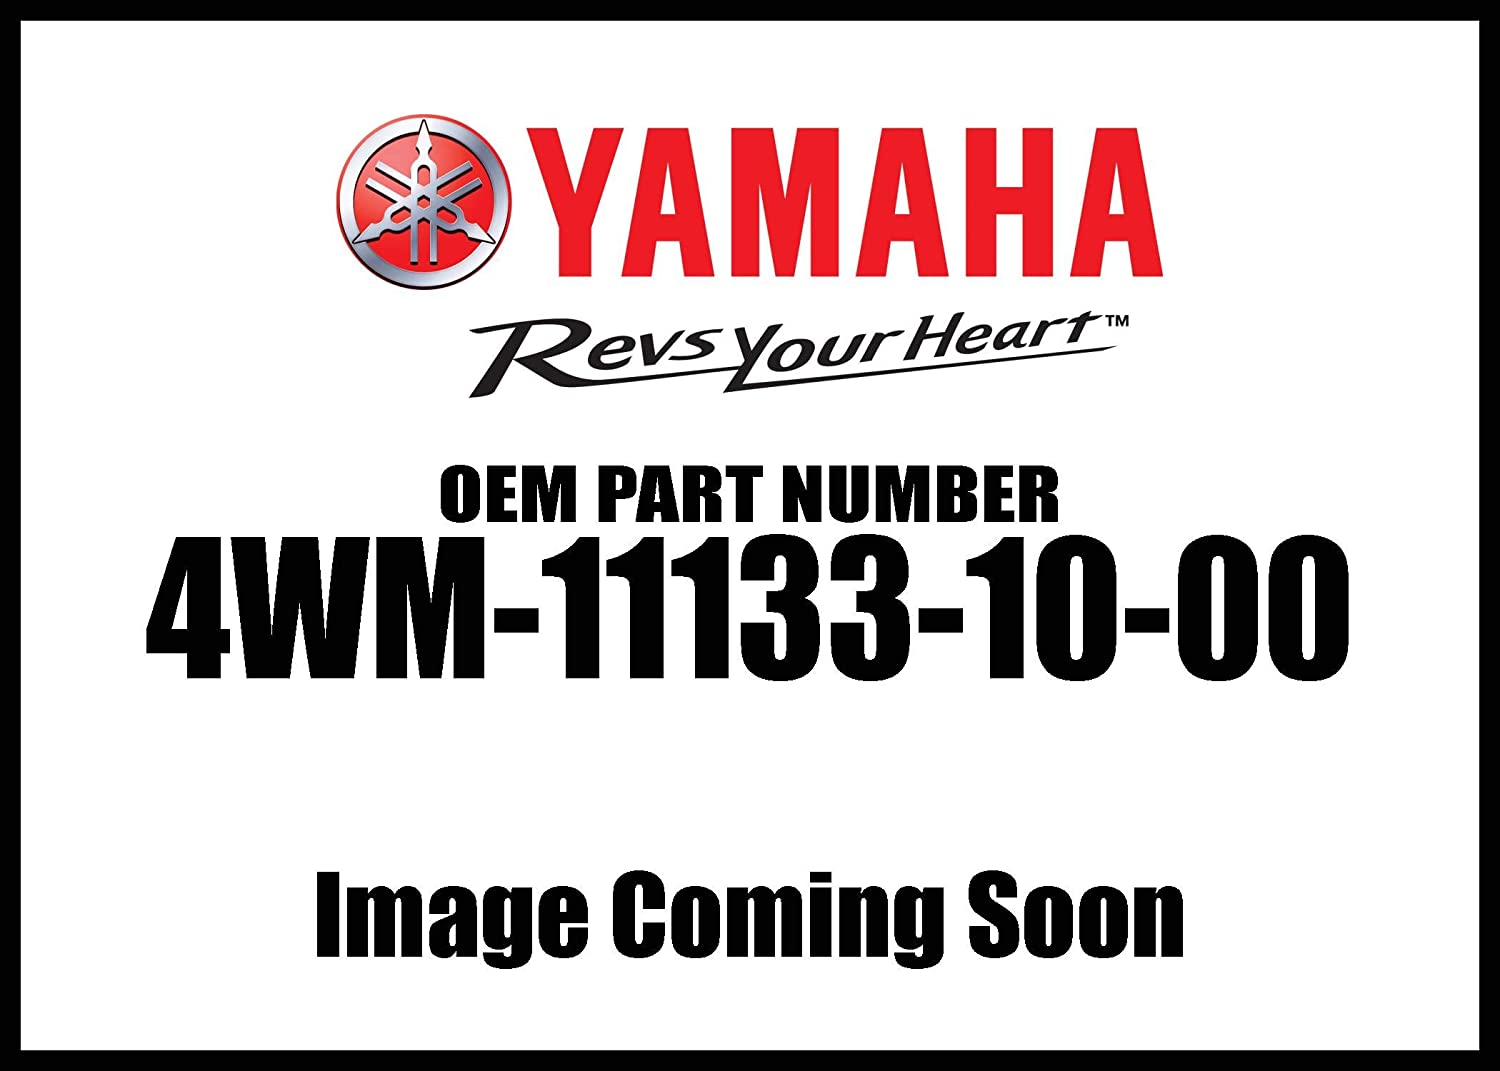 Intake Valv; 4WM111331000 Made by Yamaha Yamaha 4WM-11133-10-00 Guide